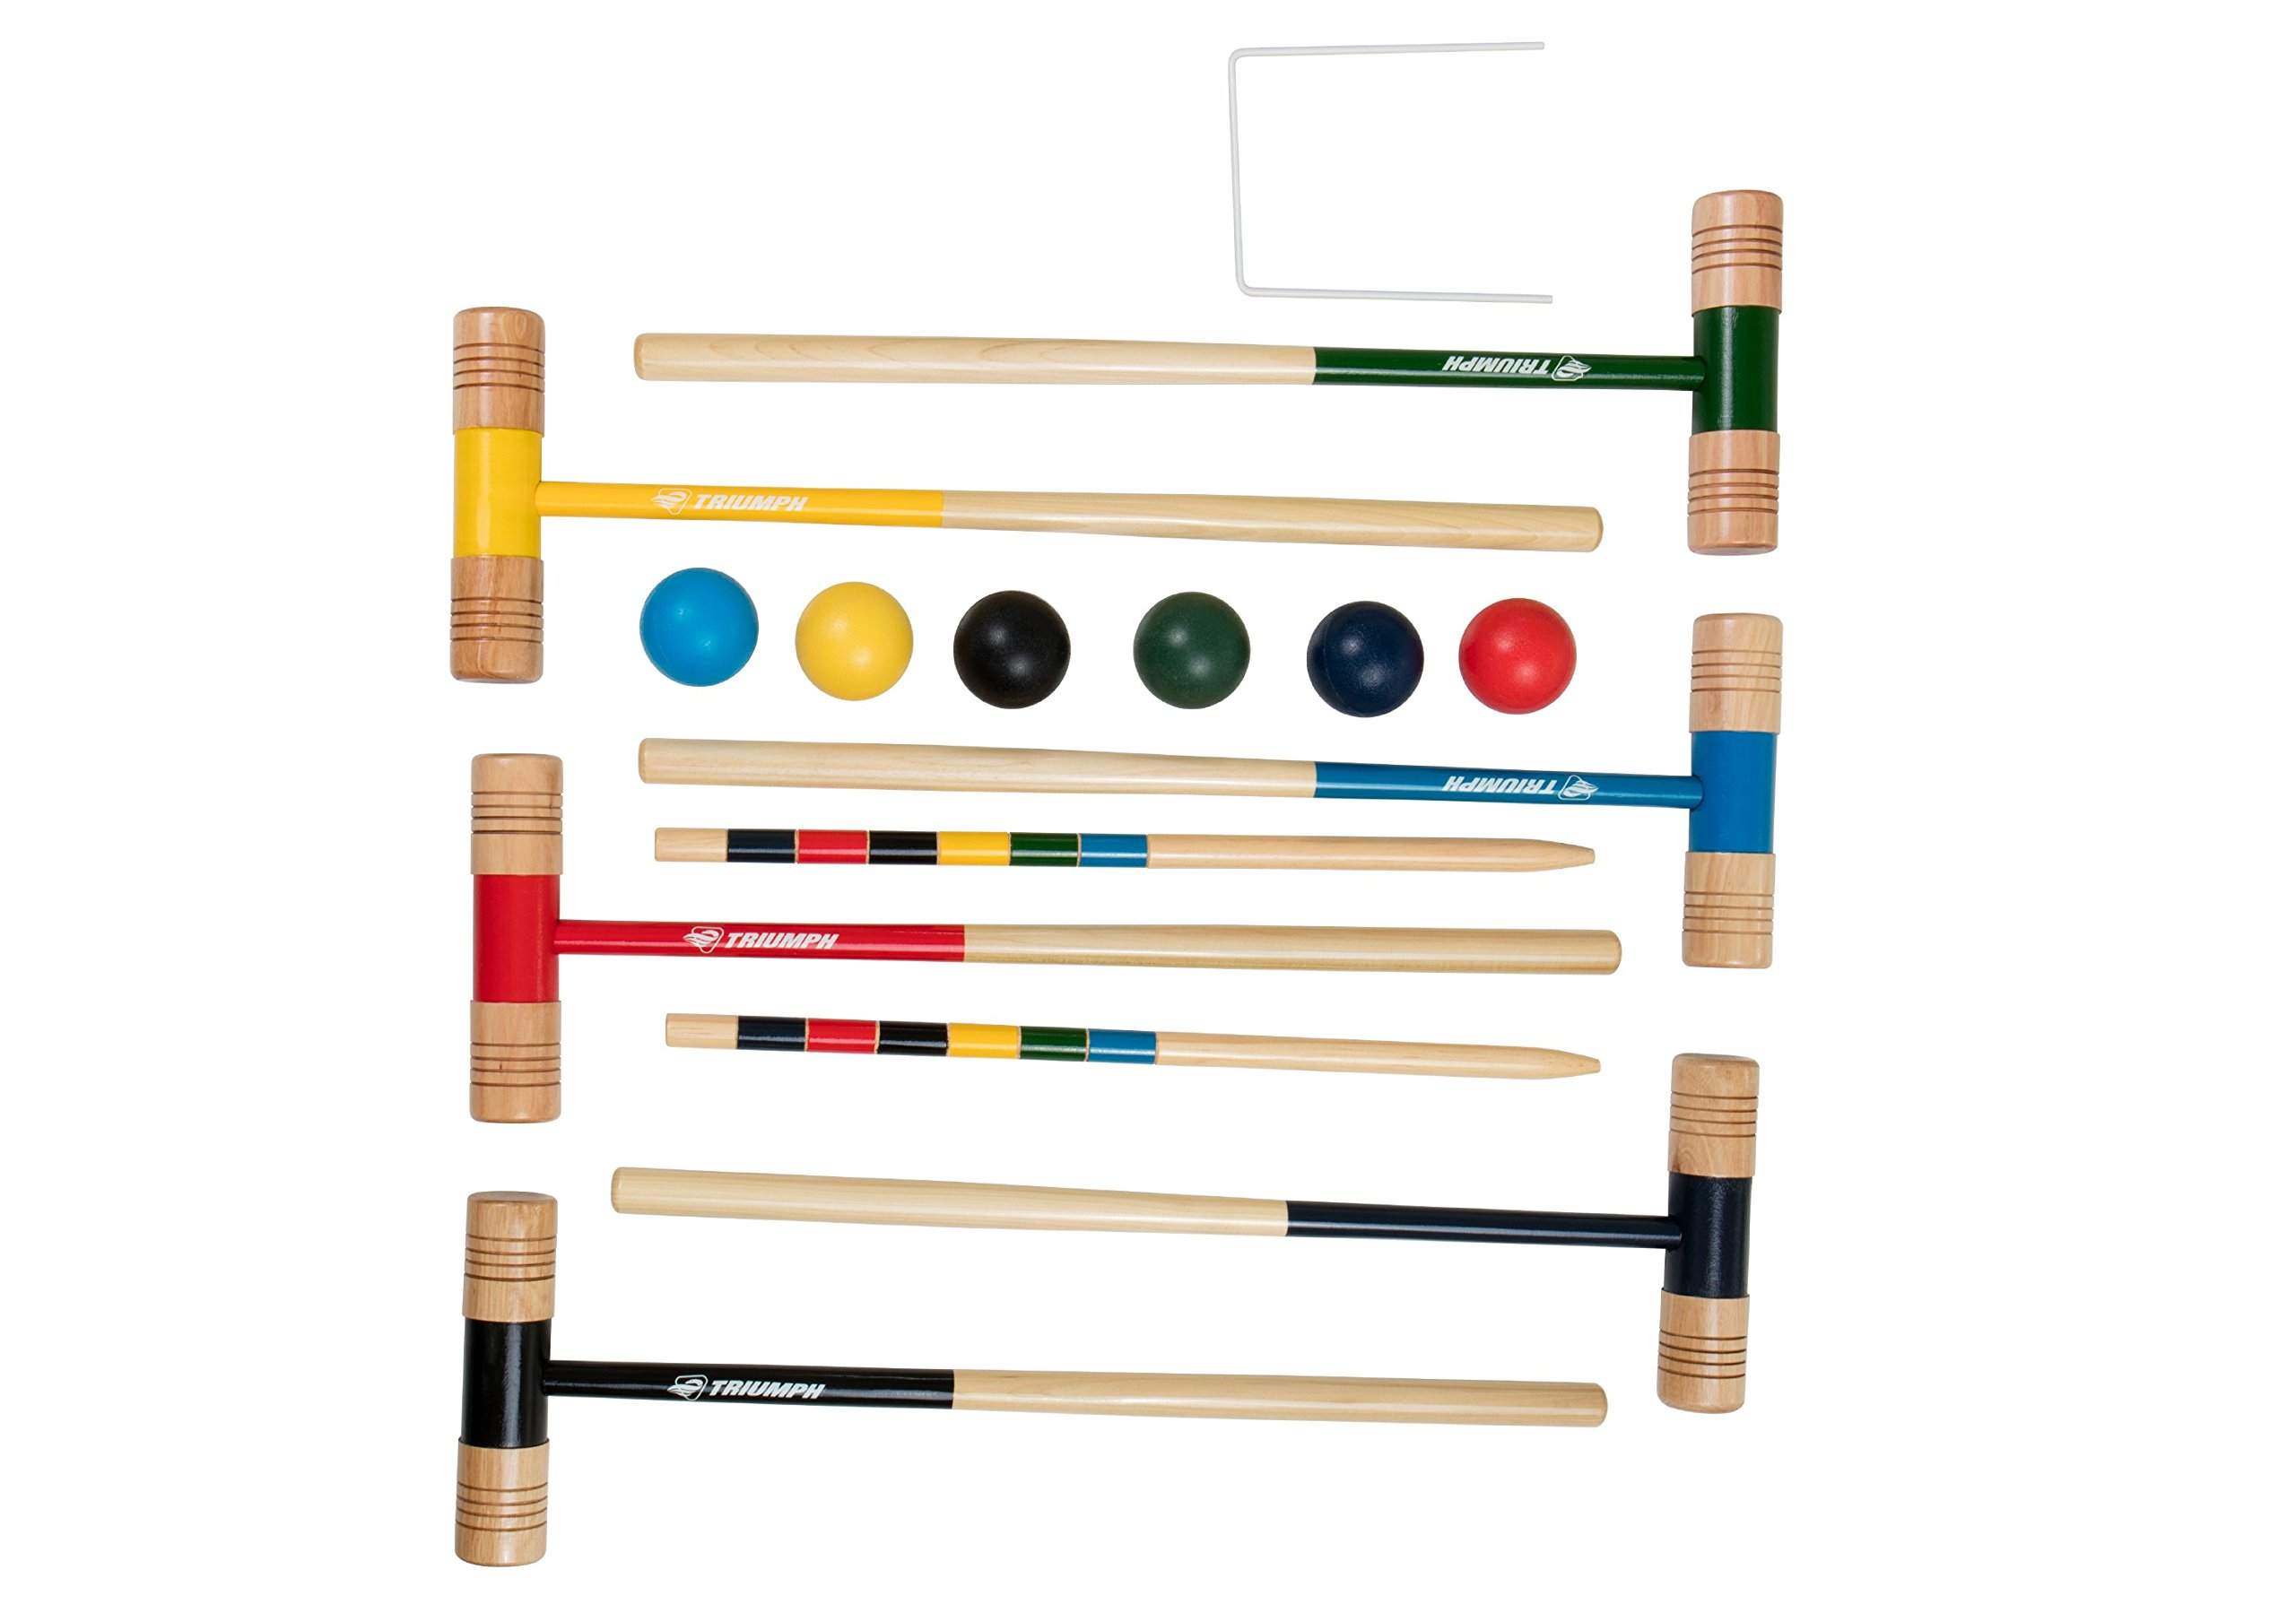 Triumph 6-Player All Pro Backyard Croquet Set with 6 Wood Mallets, Balls, and Carry Bag by Triumph Sports